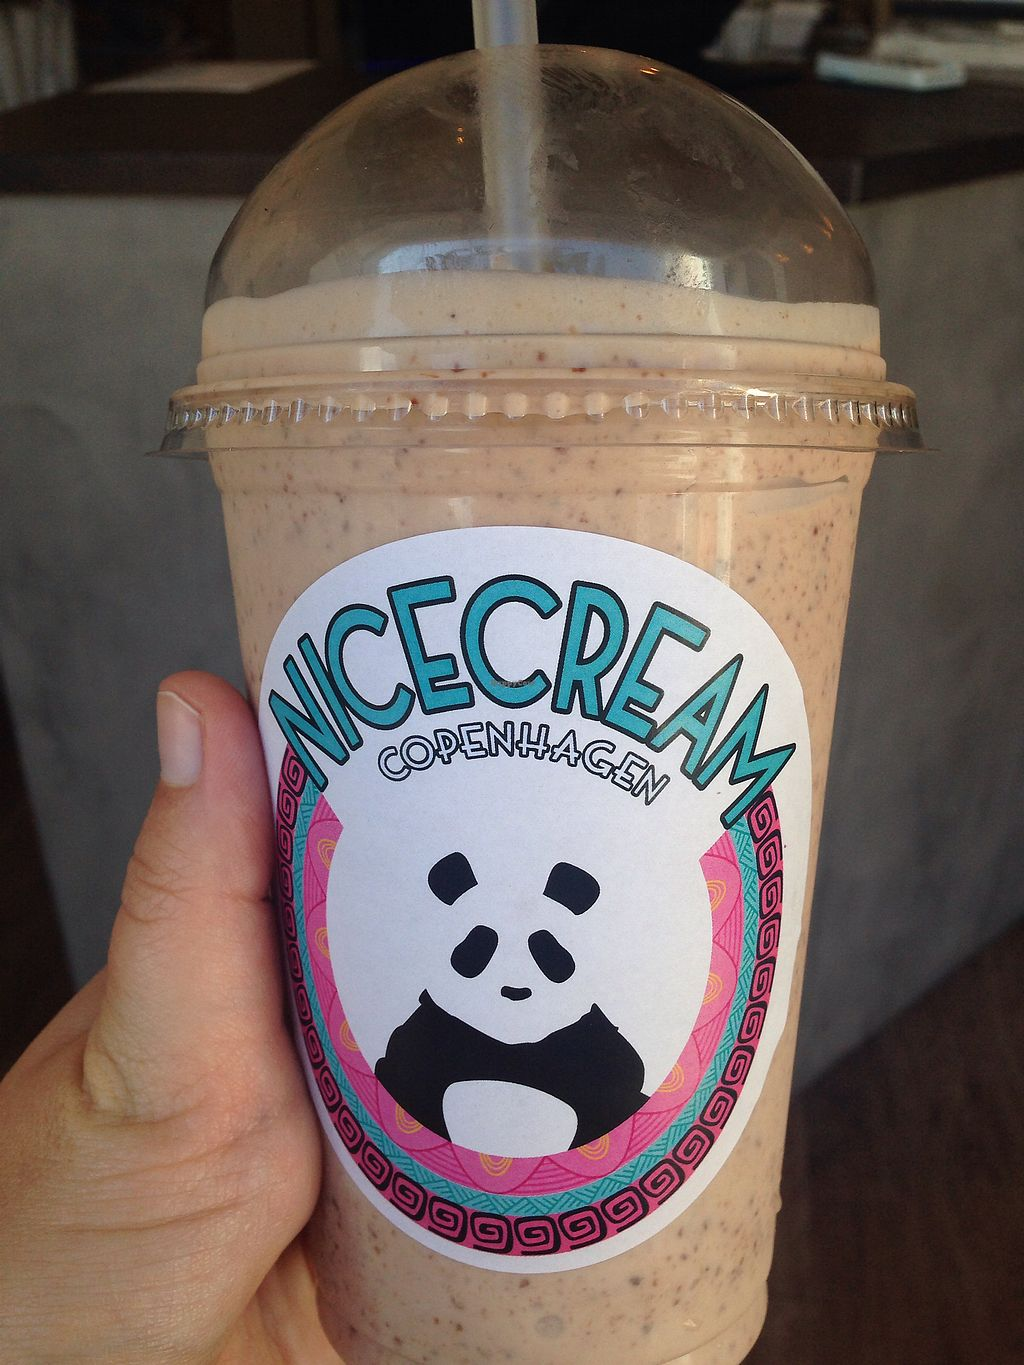 """Photo of Nicecream - temporarily closed  by <a href=""""/members/profile/Geraldine"""">Geraldine</a> <br/>peanut butter milkshake  <br/> July 8, 2017  - <a href='/contact/abuse/image/77904/277905'>Report</a>"""